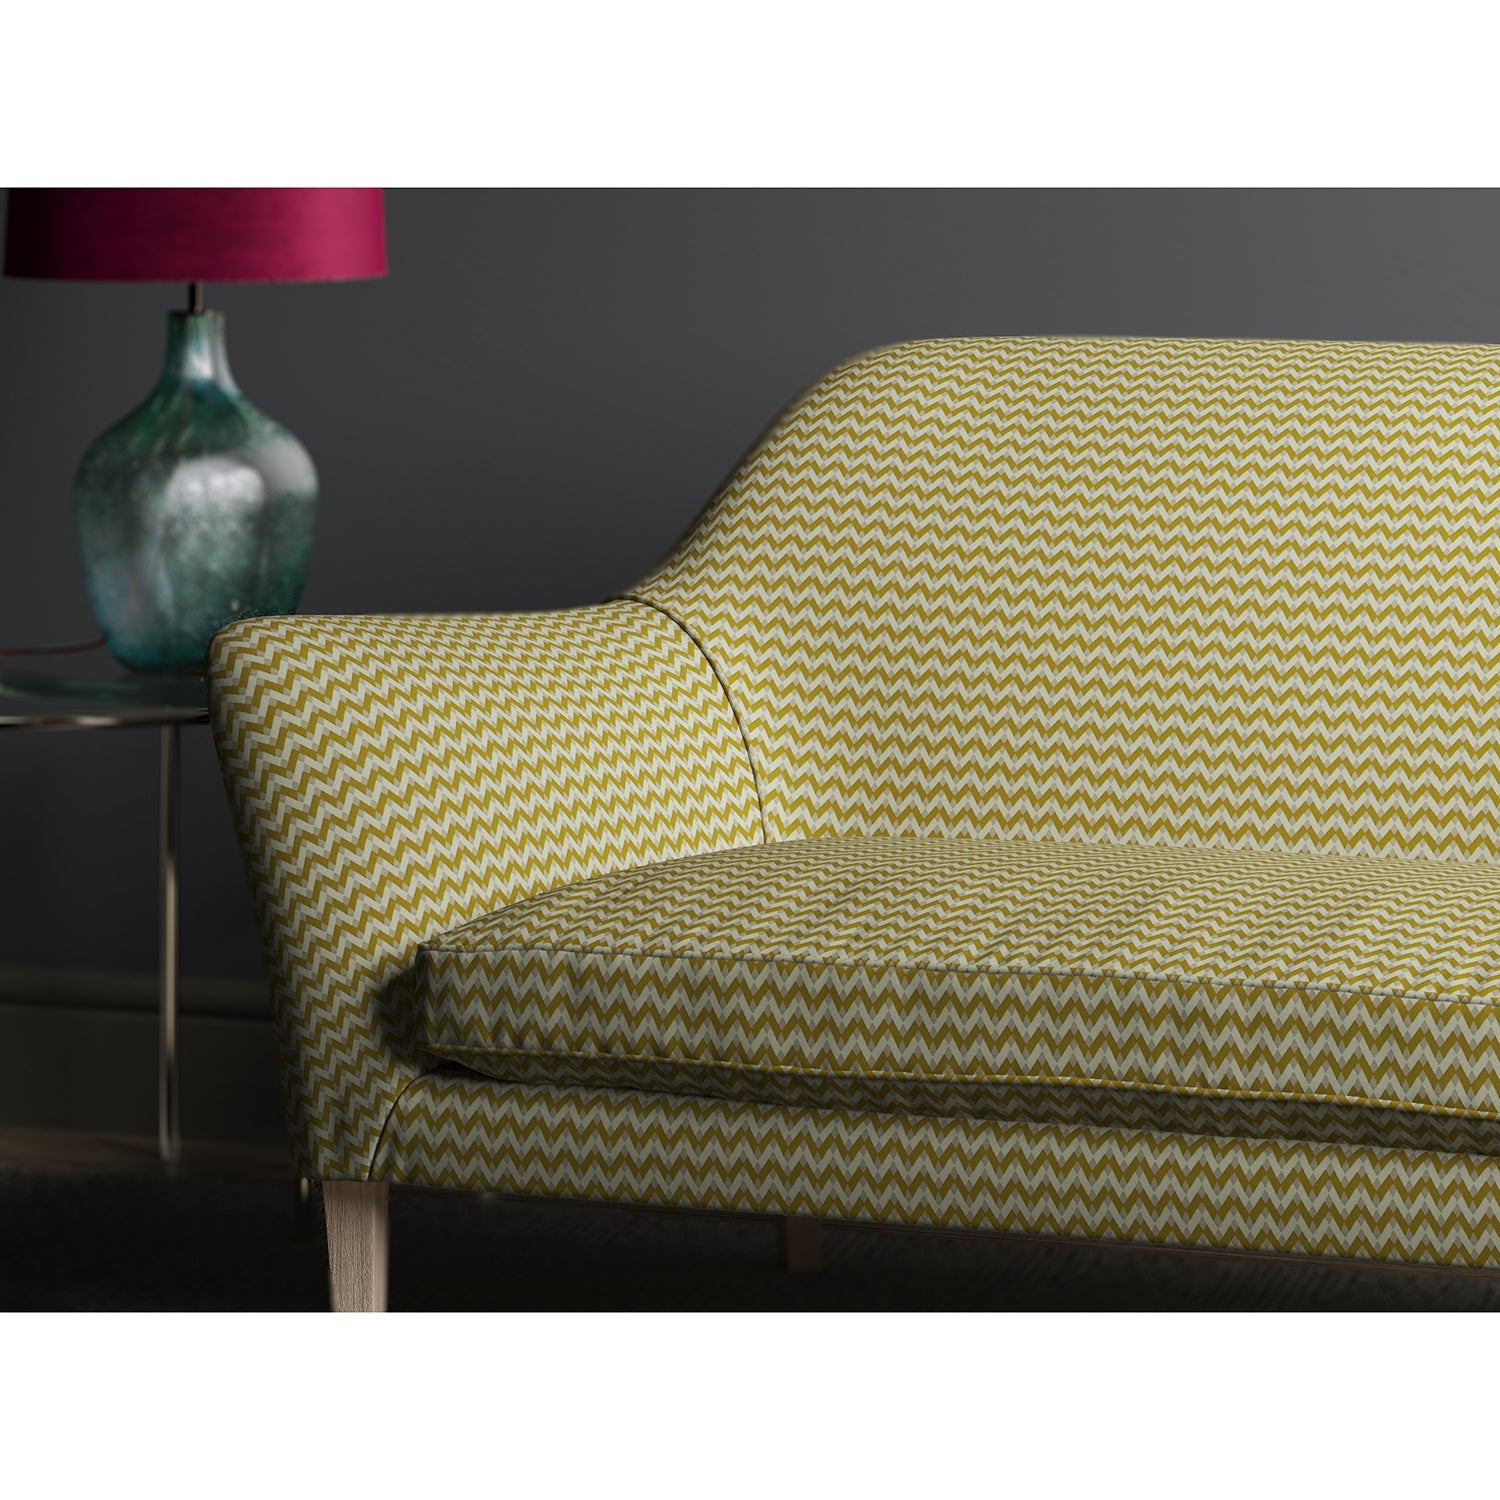 Sofa in design name Bolero, colourway Yellow from Tango Weaves